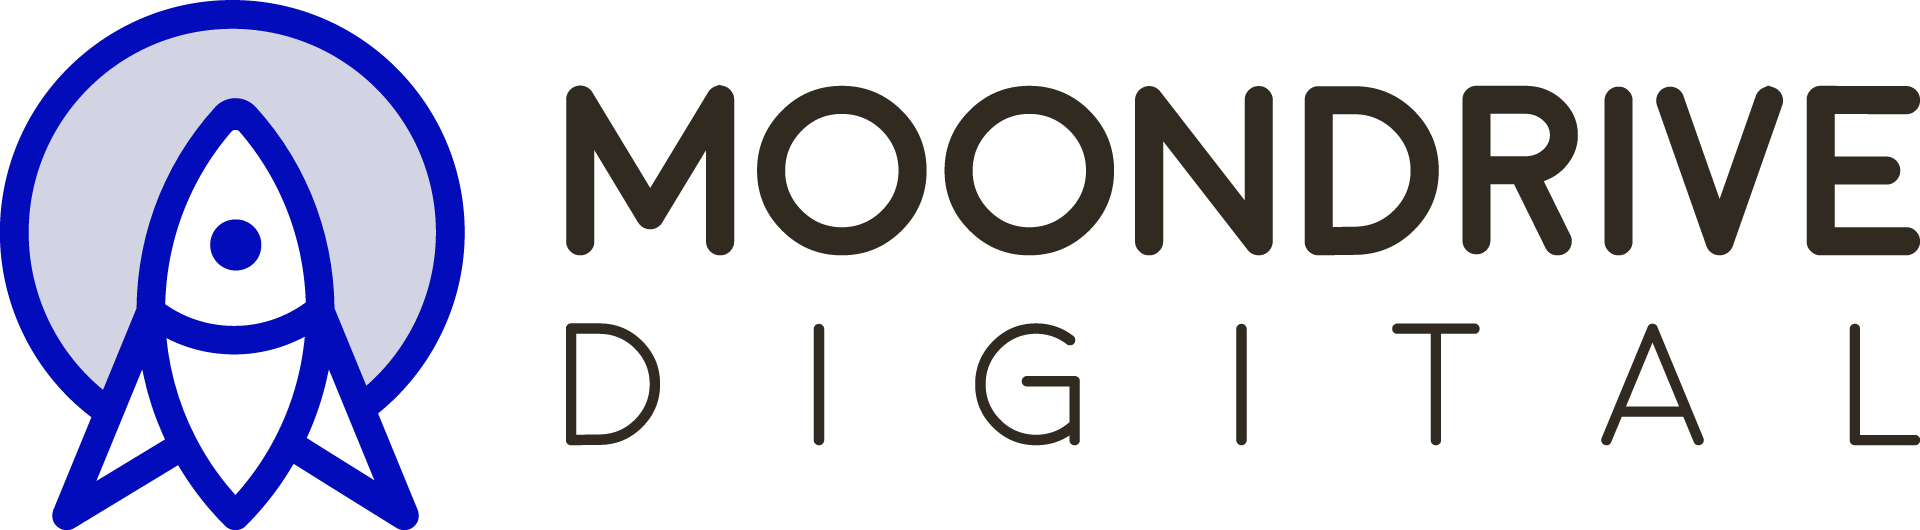 Moondrive Digital Media Logo - blue